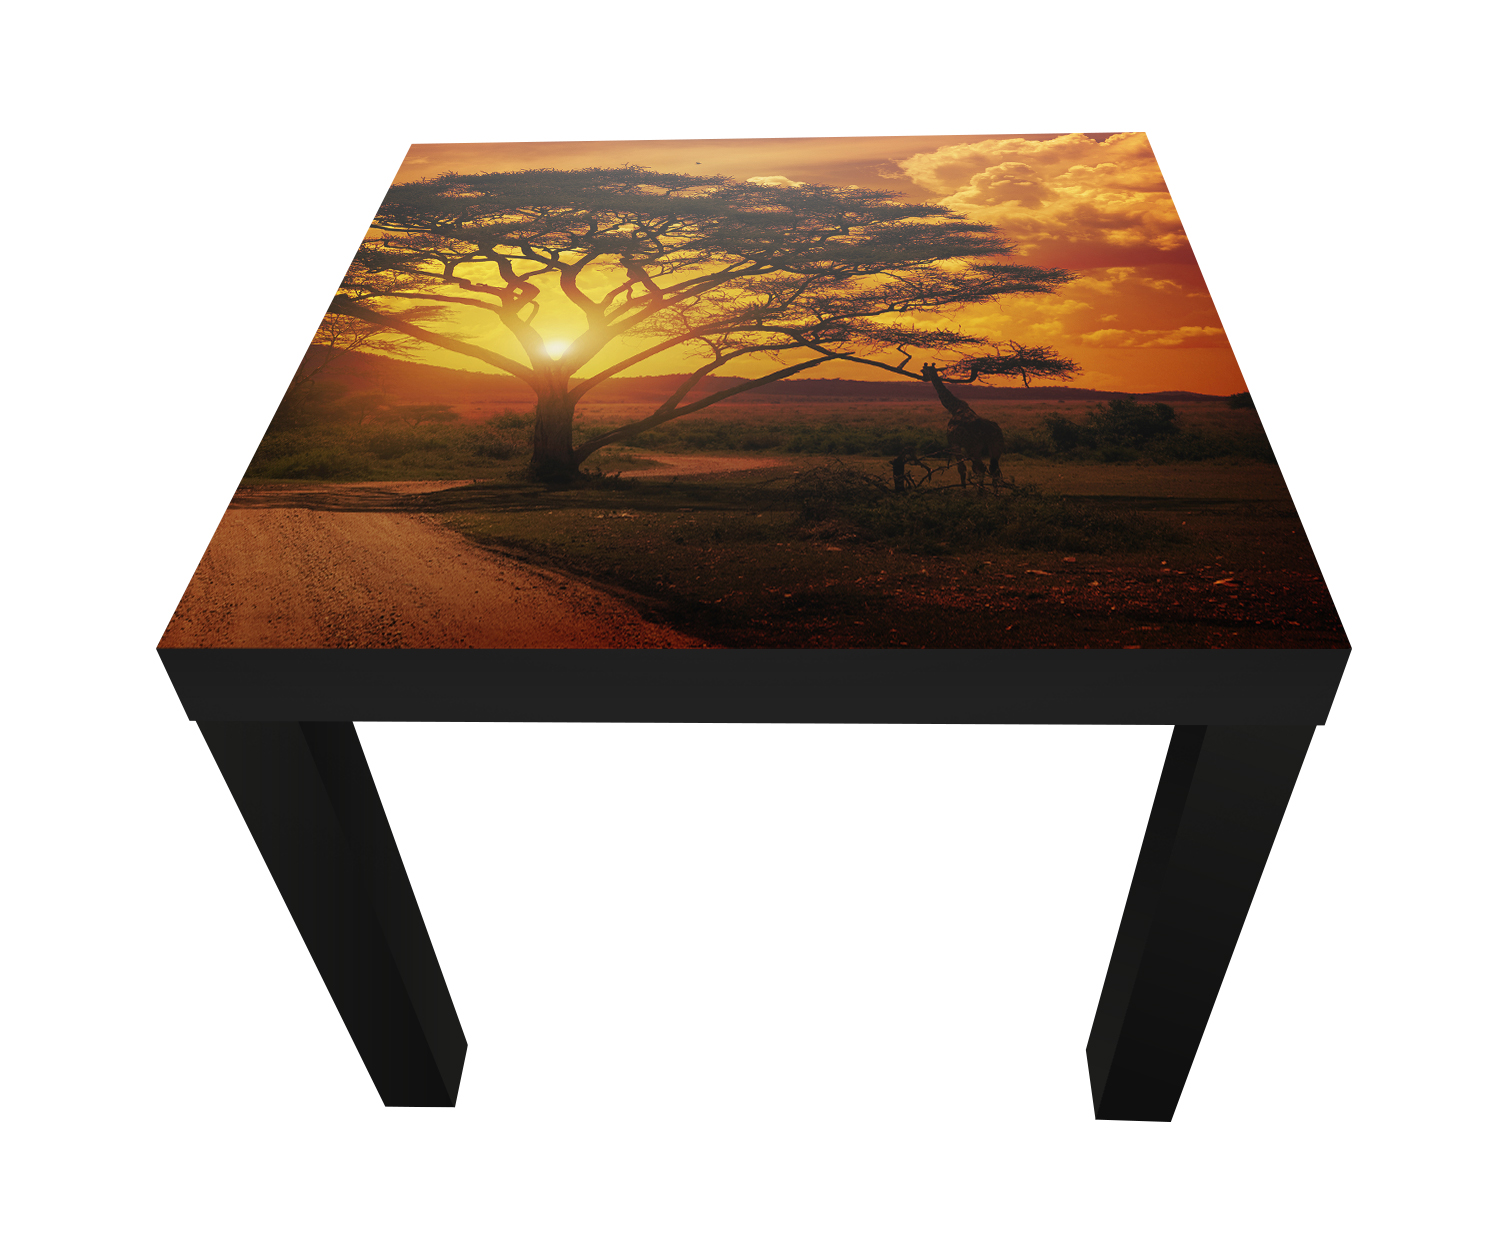 beistelltisch afrika sonnenuntergang designtisch m0001 ebay. Black Bedroom Furniture Sets. Home Design Ideas